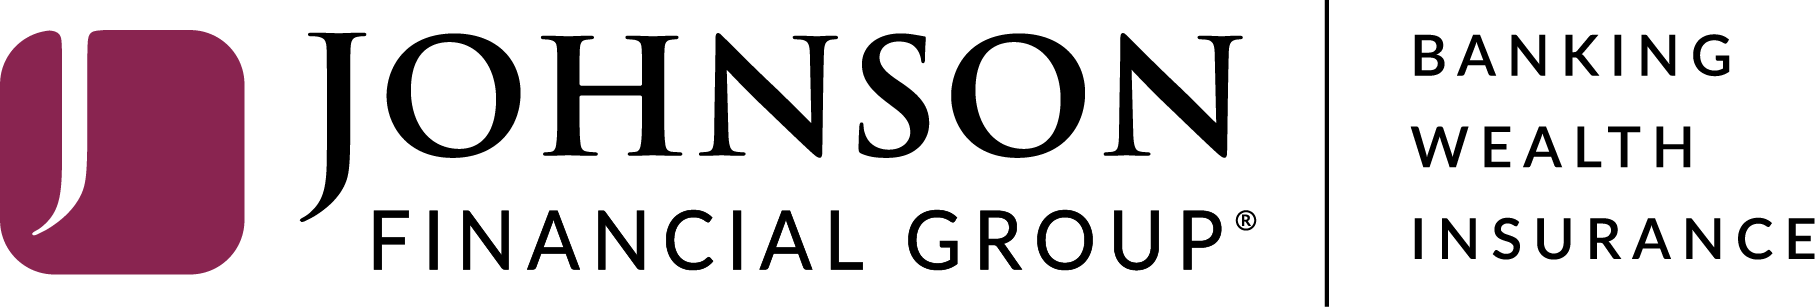 Johnson Financial Group Logo Banking Wealth and Insurance Servies